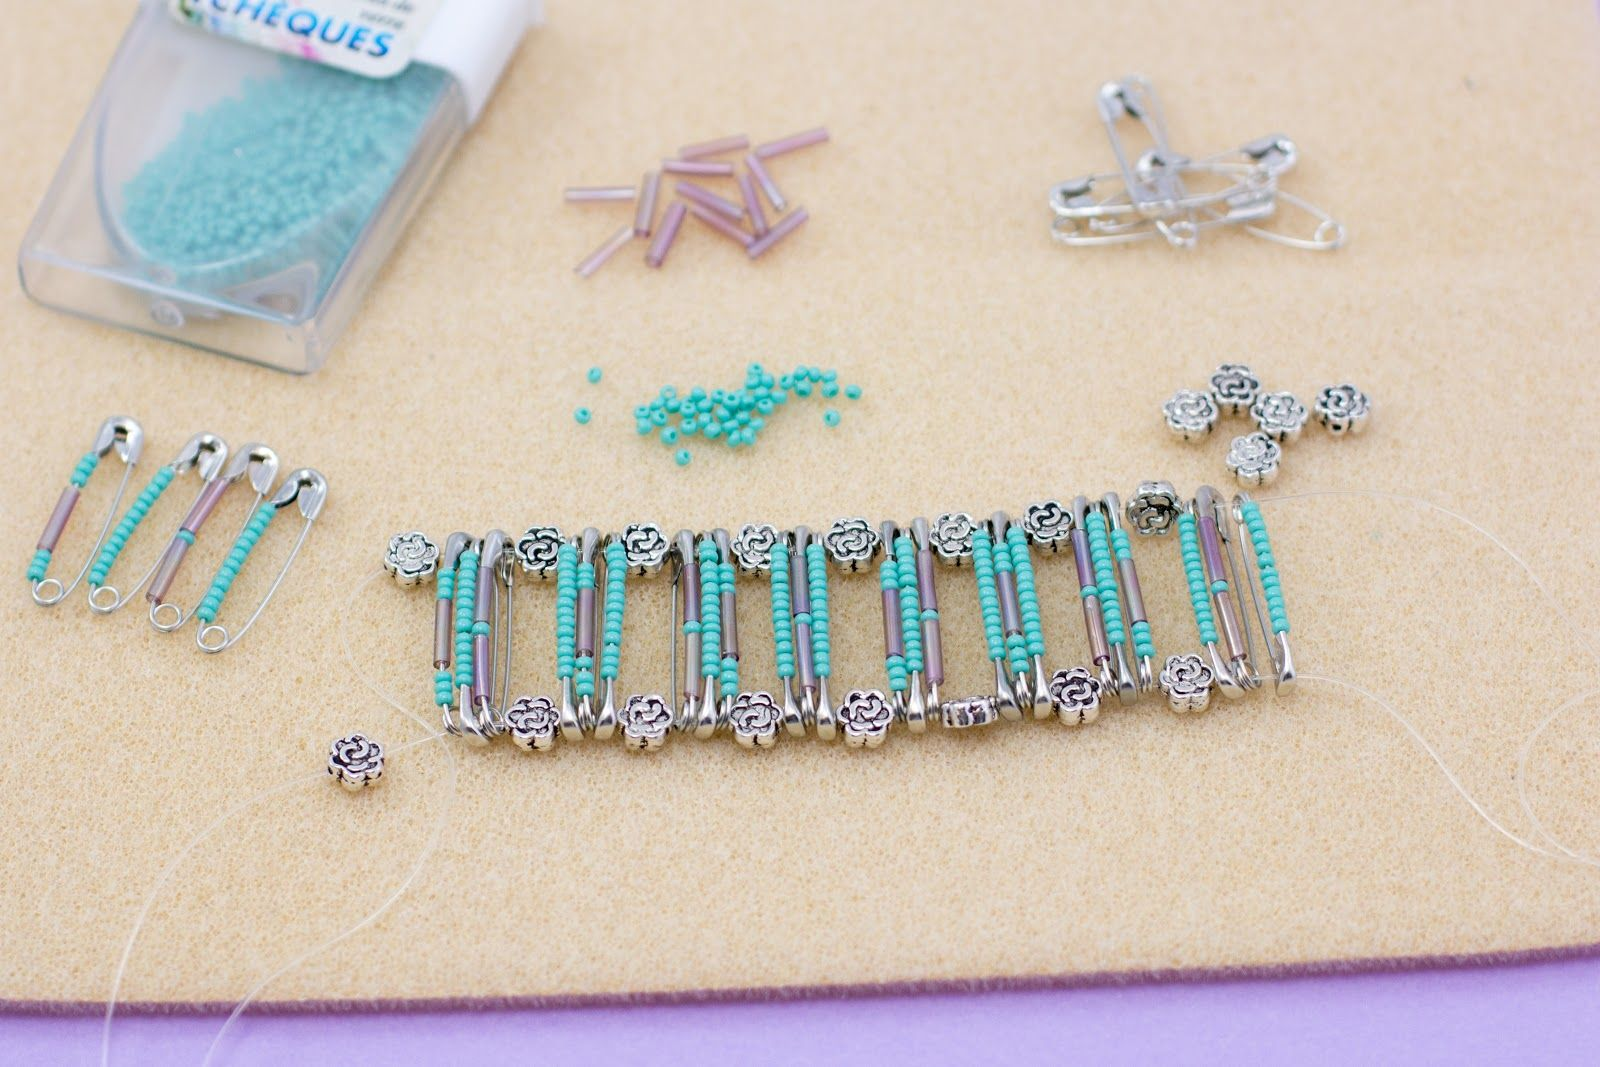 My Favourite Things Friends DIY Safety Pin Bracelet